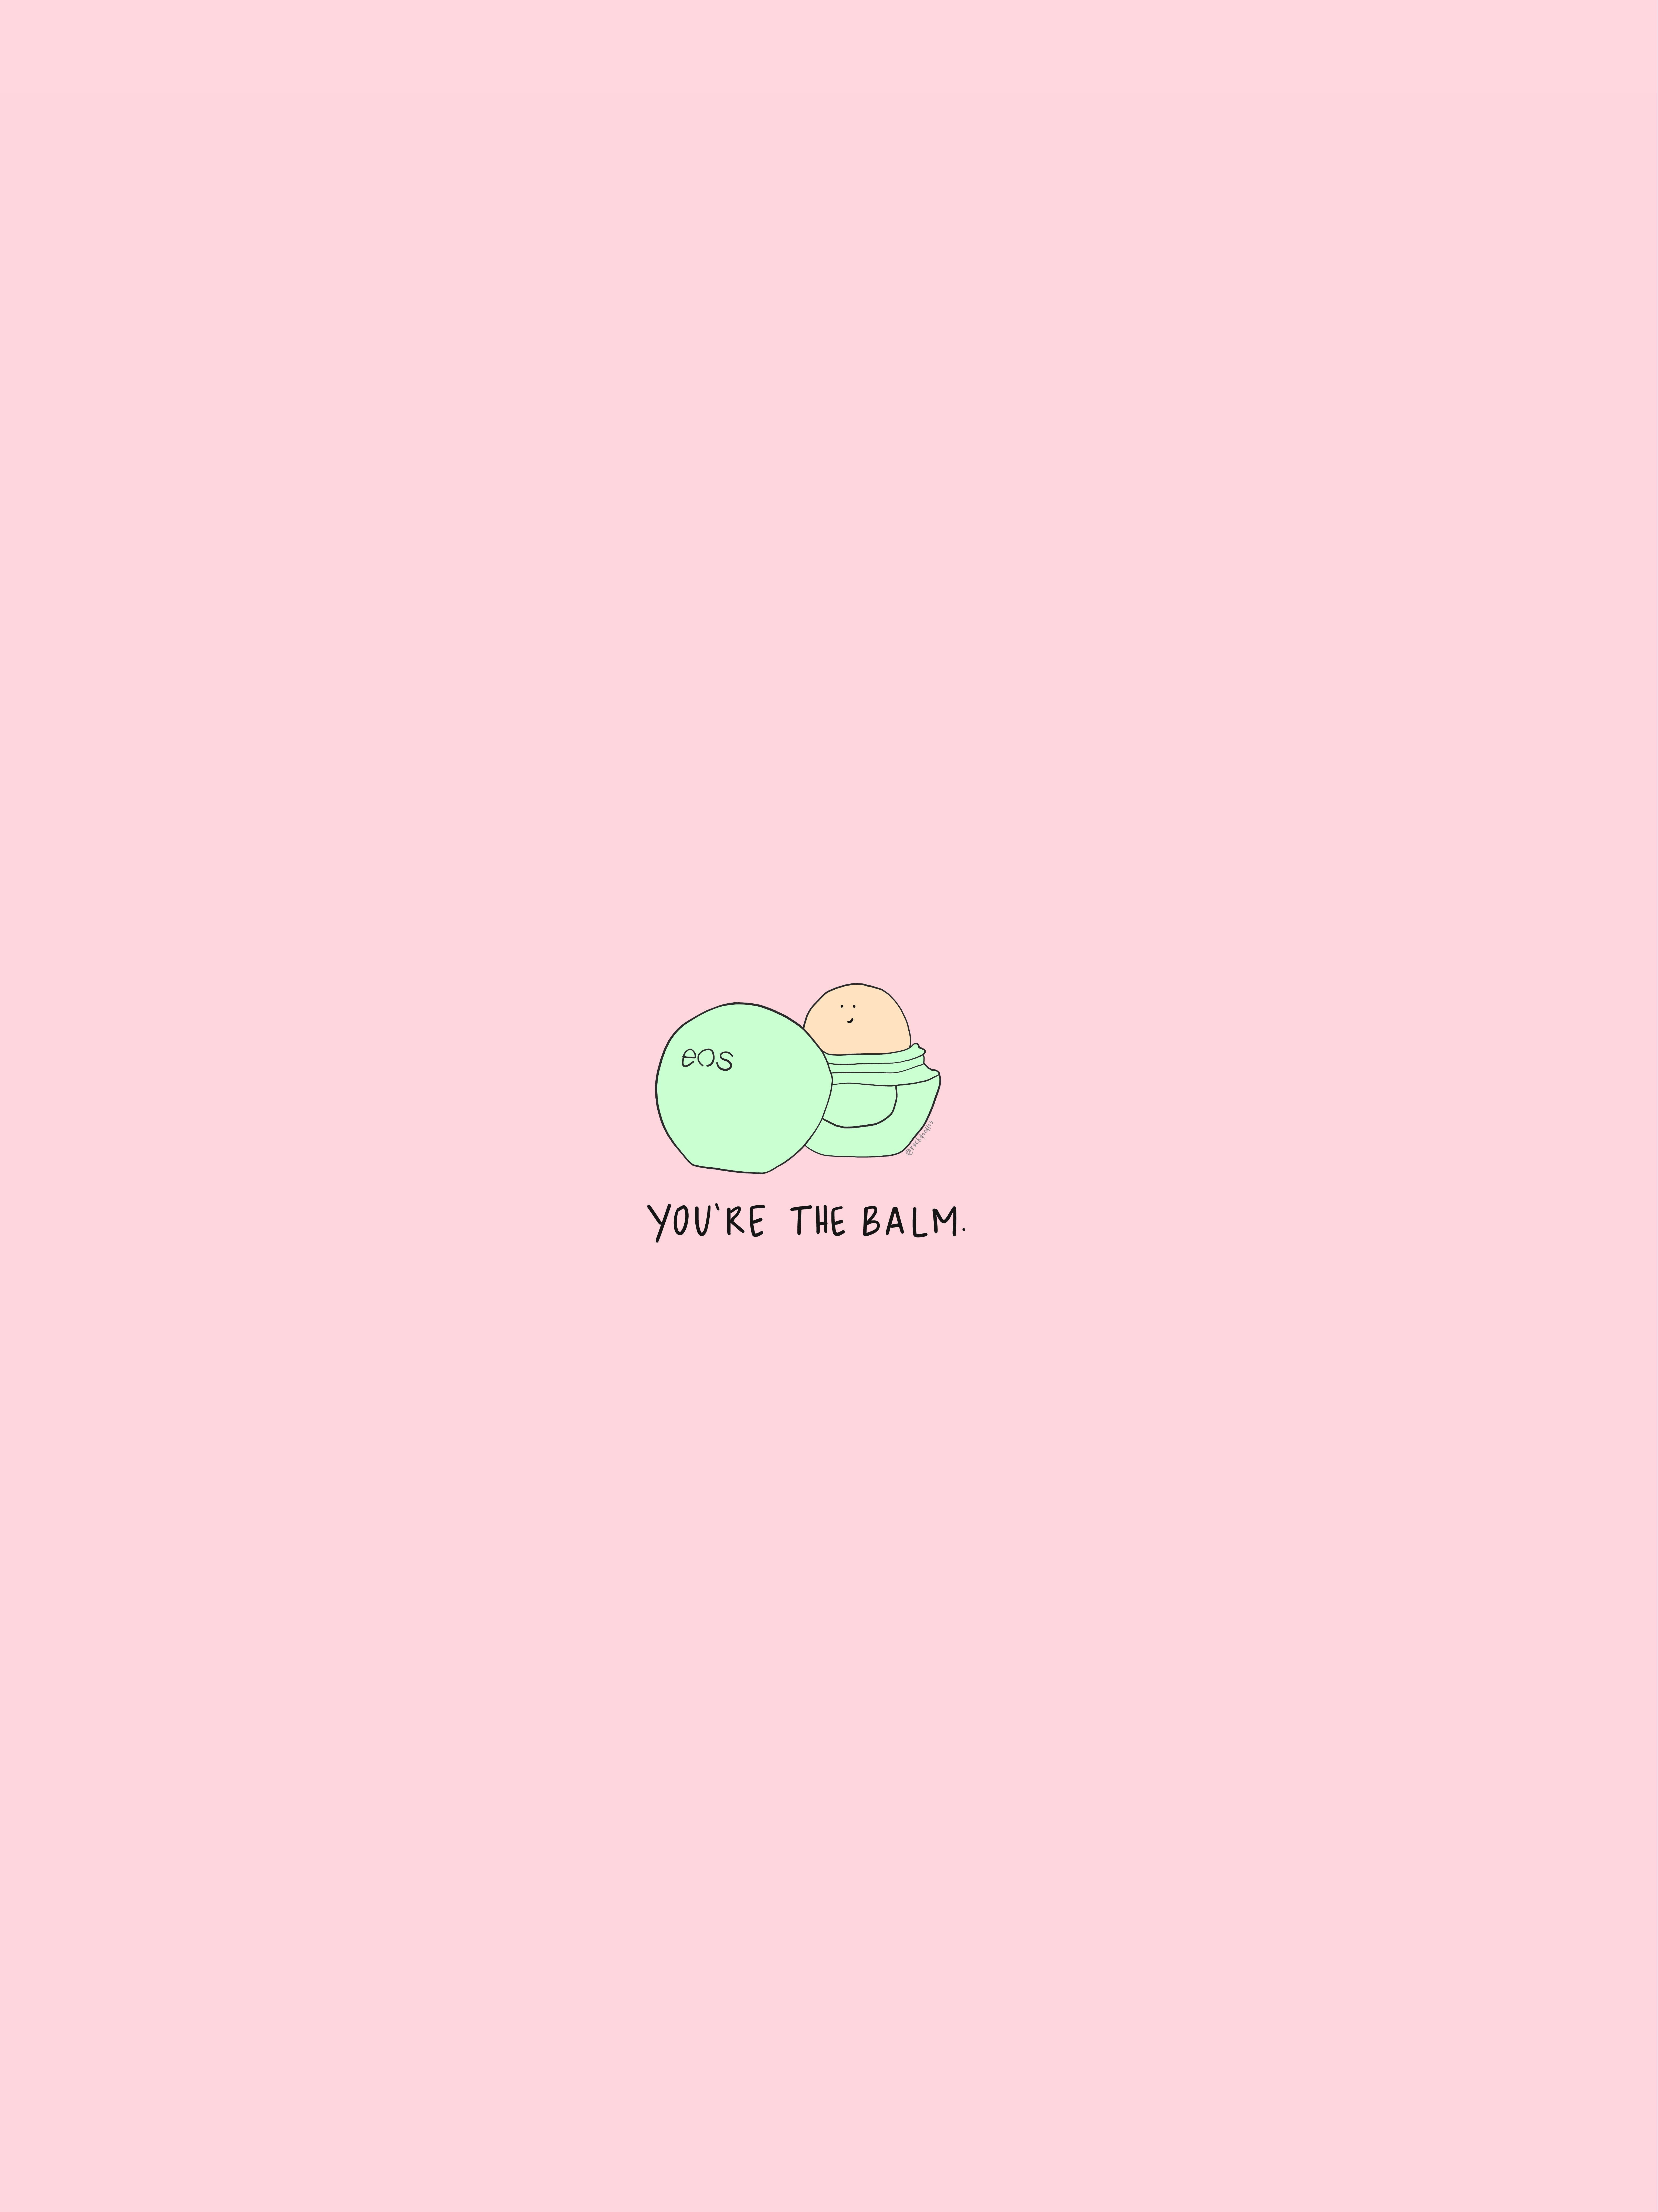 Eos Youre The Balm Aesthetic Iphone Wallpaper Pink Wallpaper